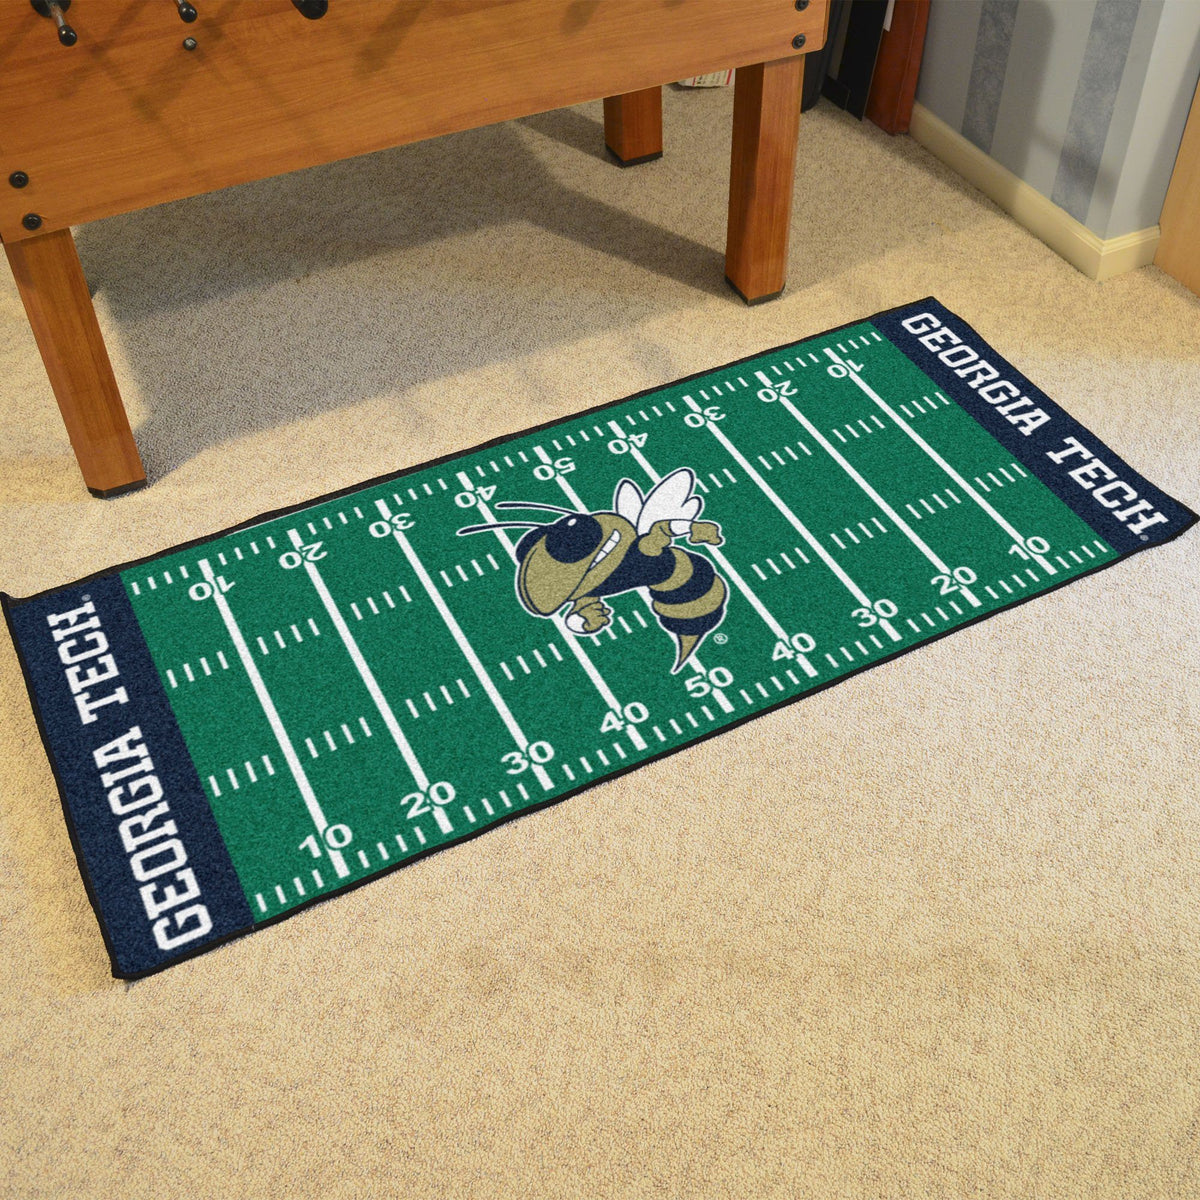 Collegiate - Football Field Runner Collegiate Mats, Rectangular Mats, Football Field Runner, Collegiate, Home Fan Mats Georgia Tech 2